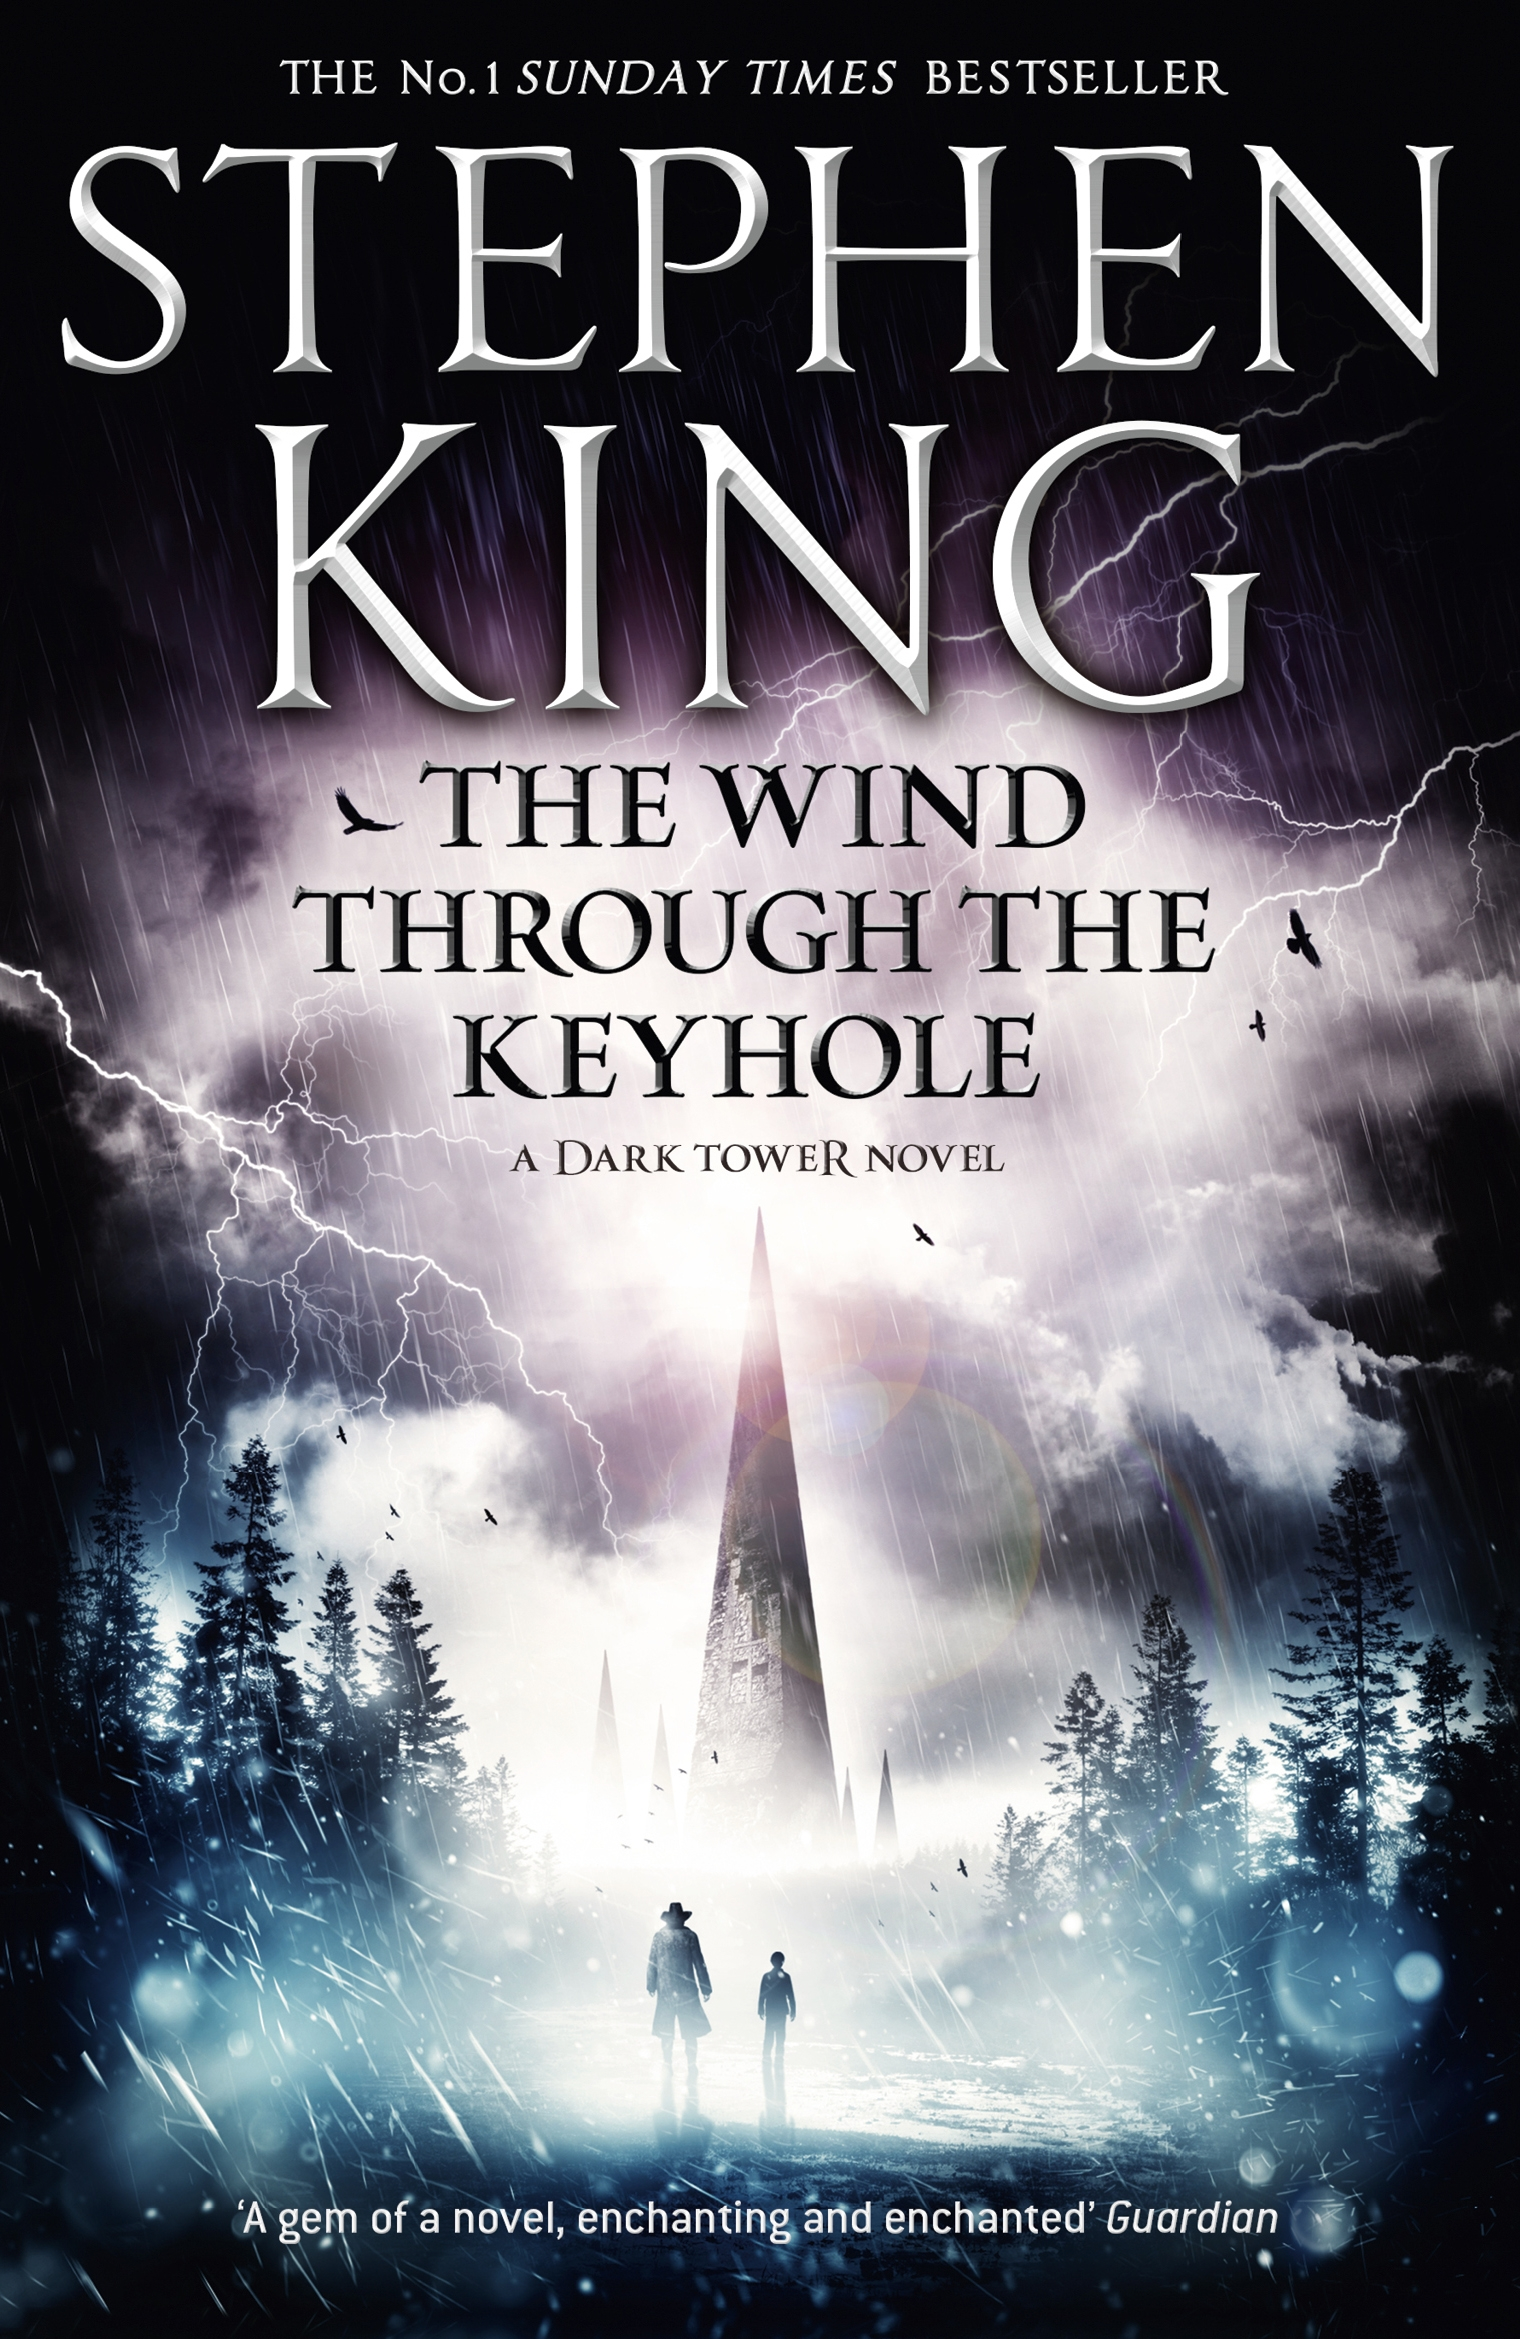 Book Cover Fantasy King : Stephen king books uk